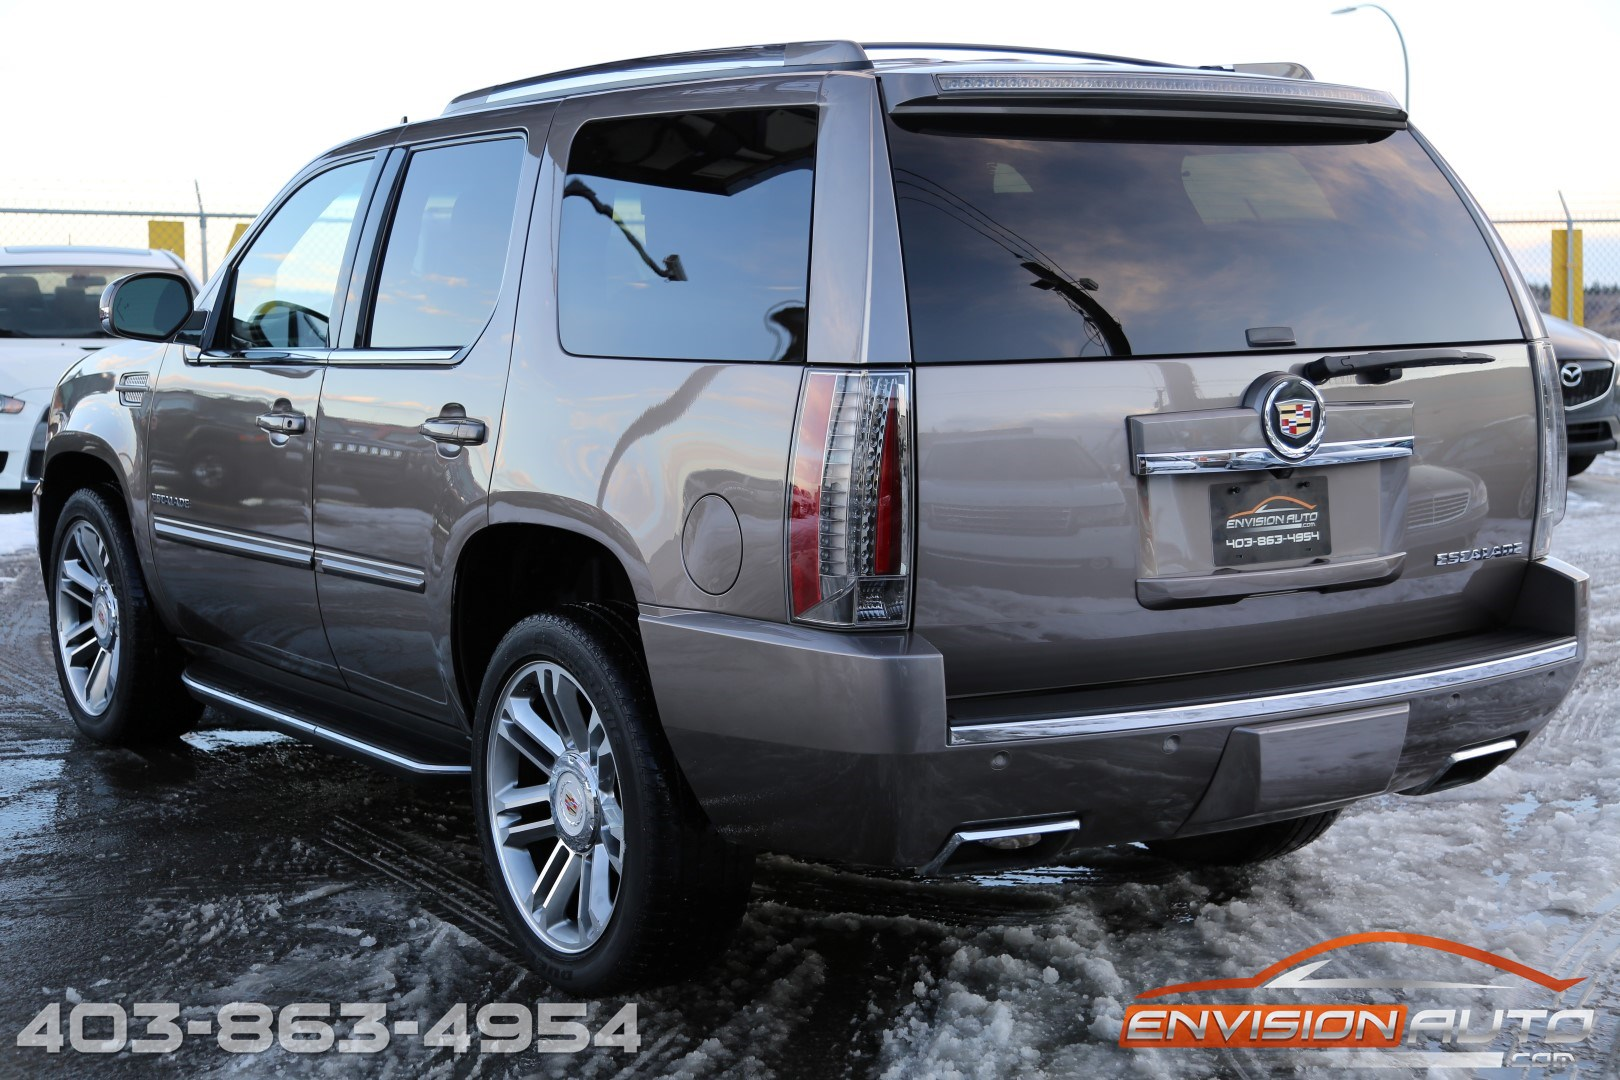 2013 cadillac escalade suv premium edition envision auto. Black Bedroom Furniture Sets. Home Design Ideas